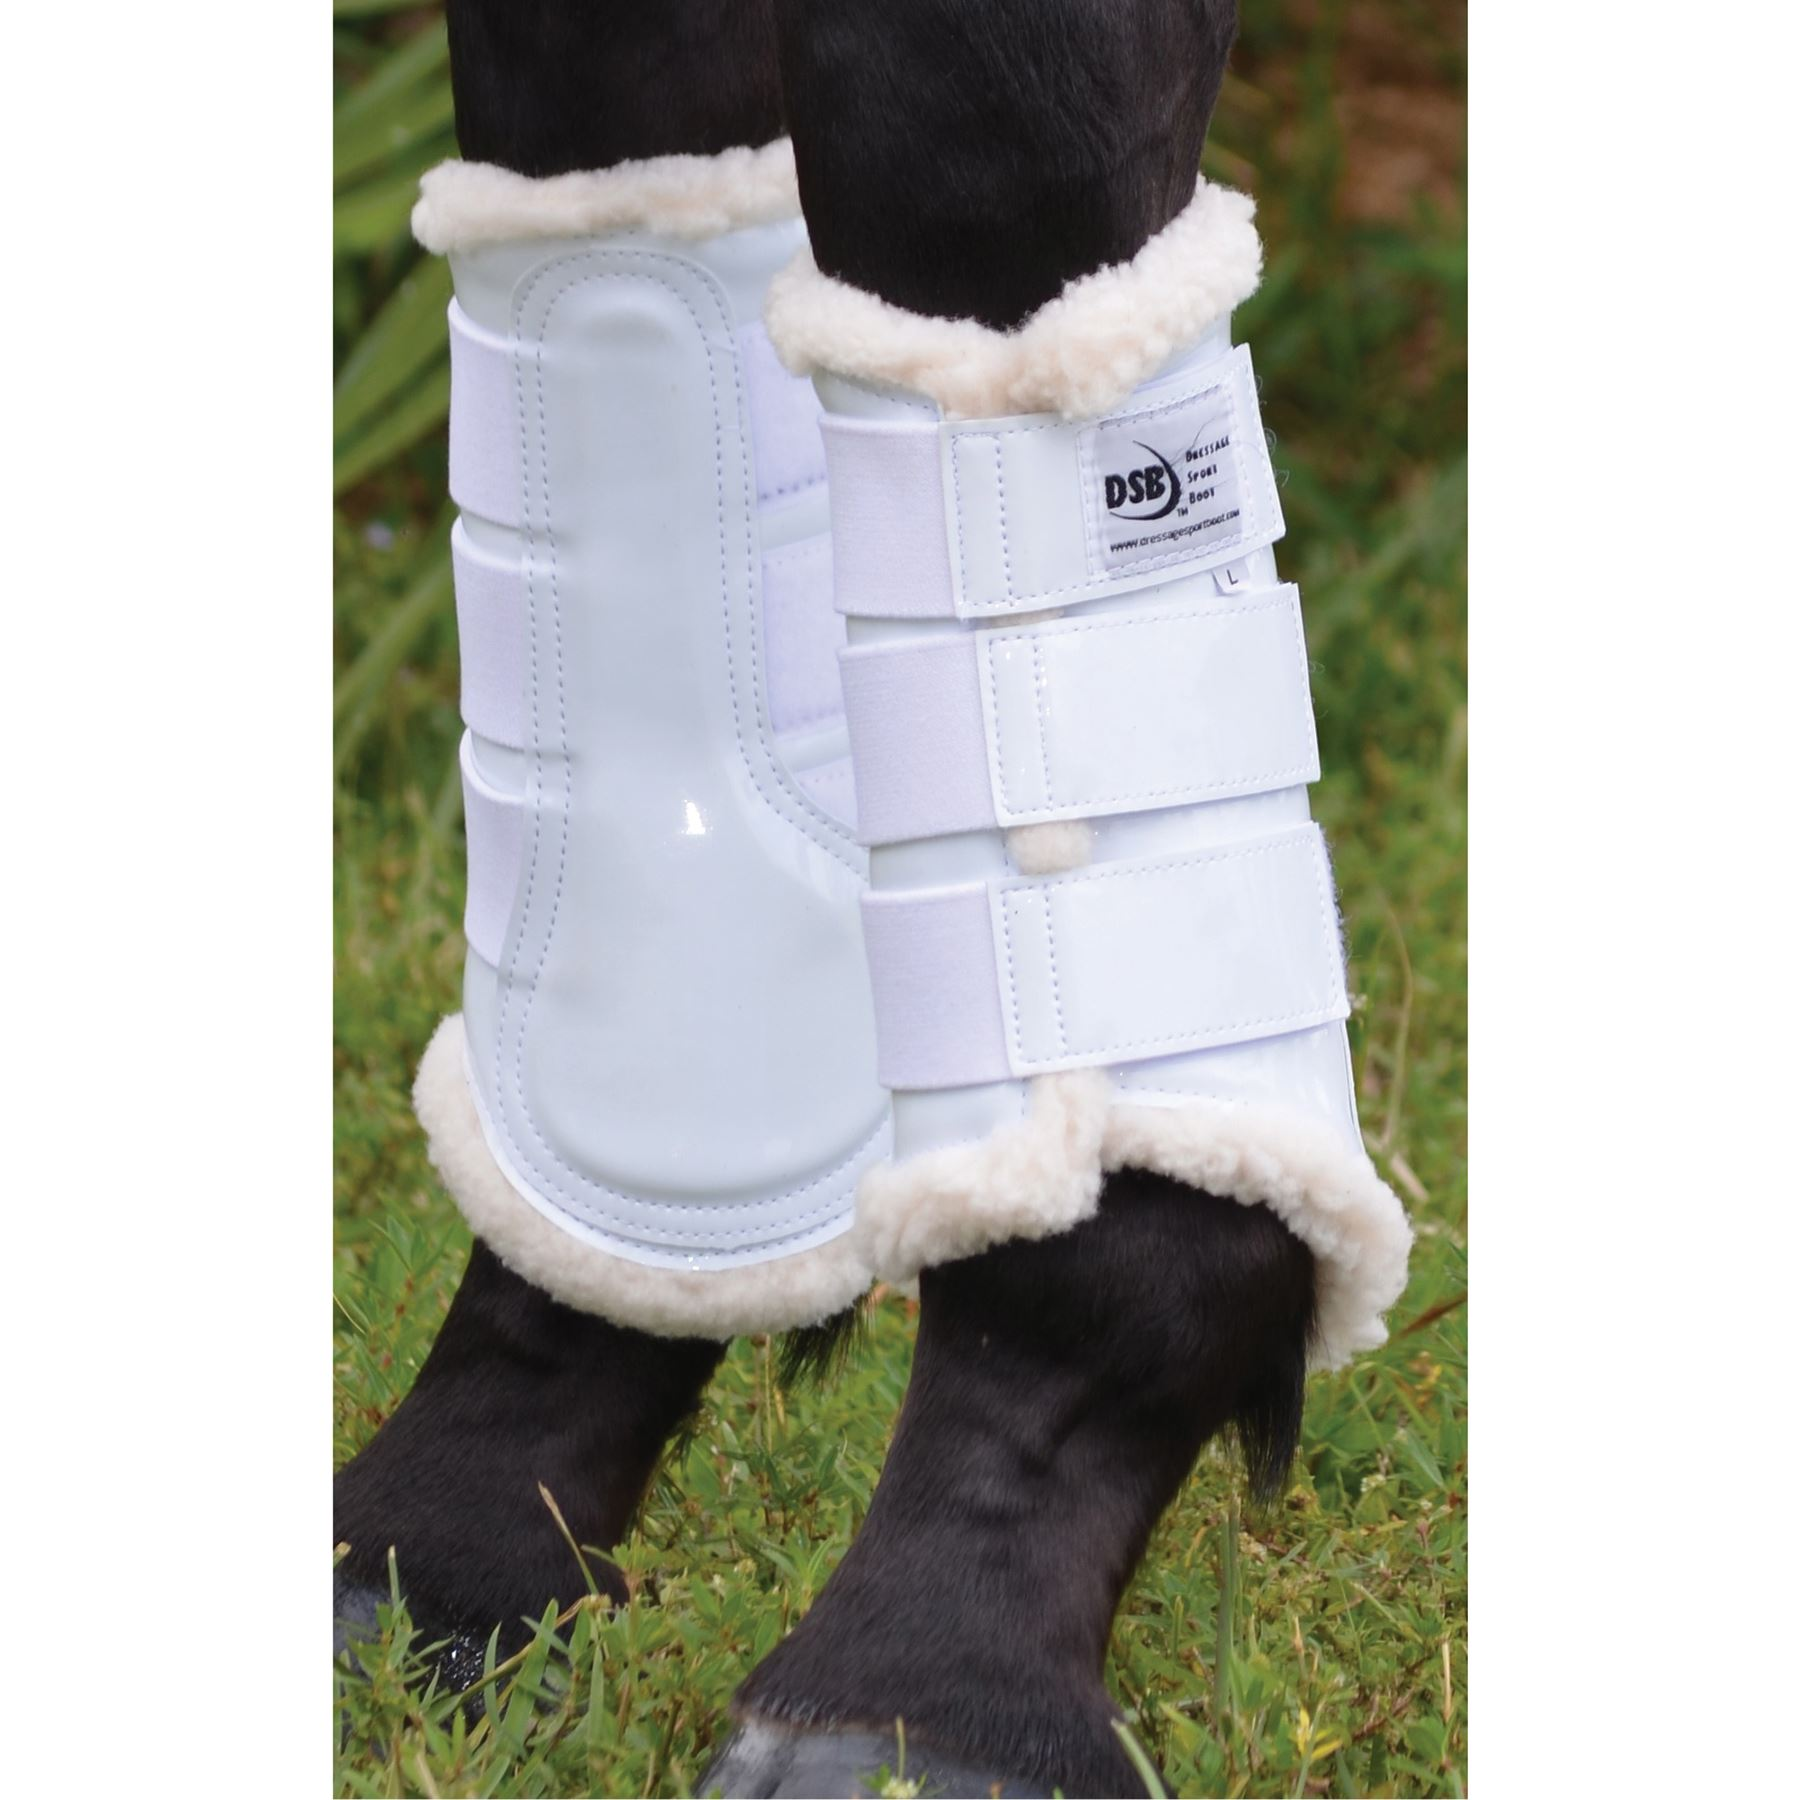 DSB Dressage Sport Boot